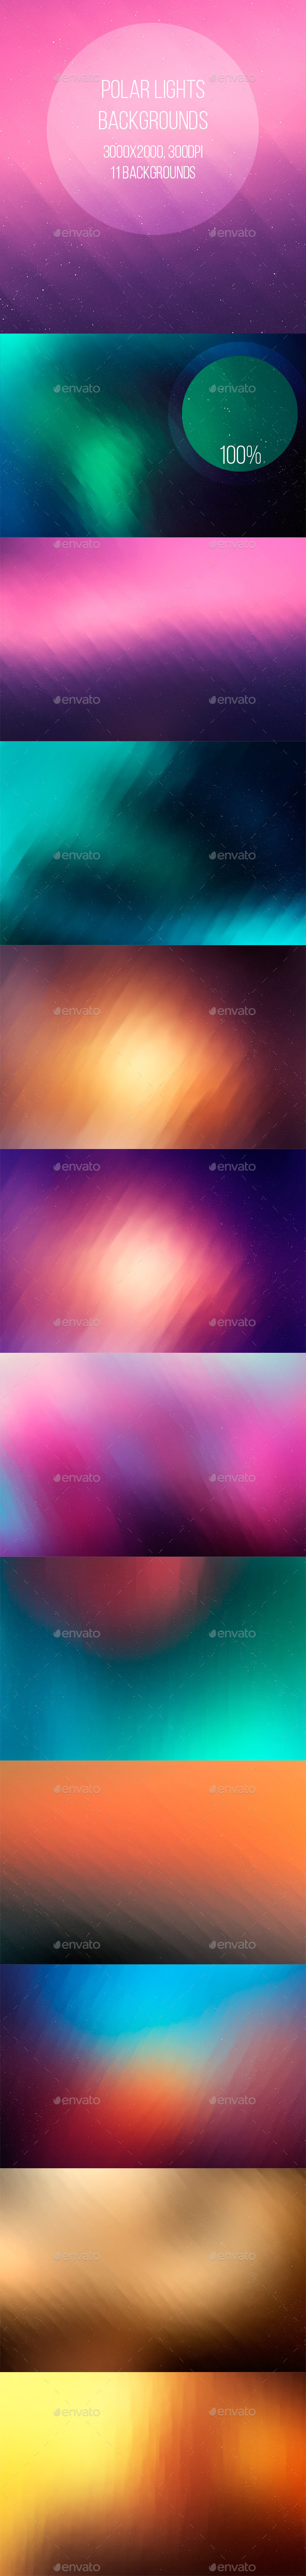 Polar Lights Backgrounds - Abstract Backgrounds